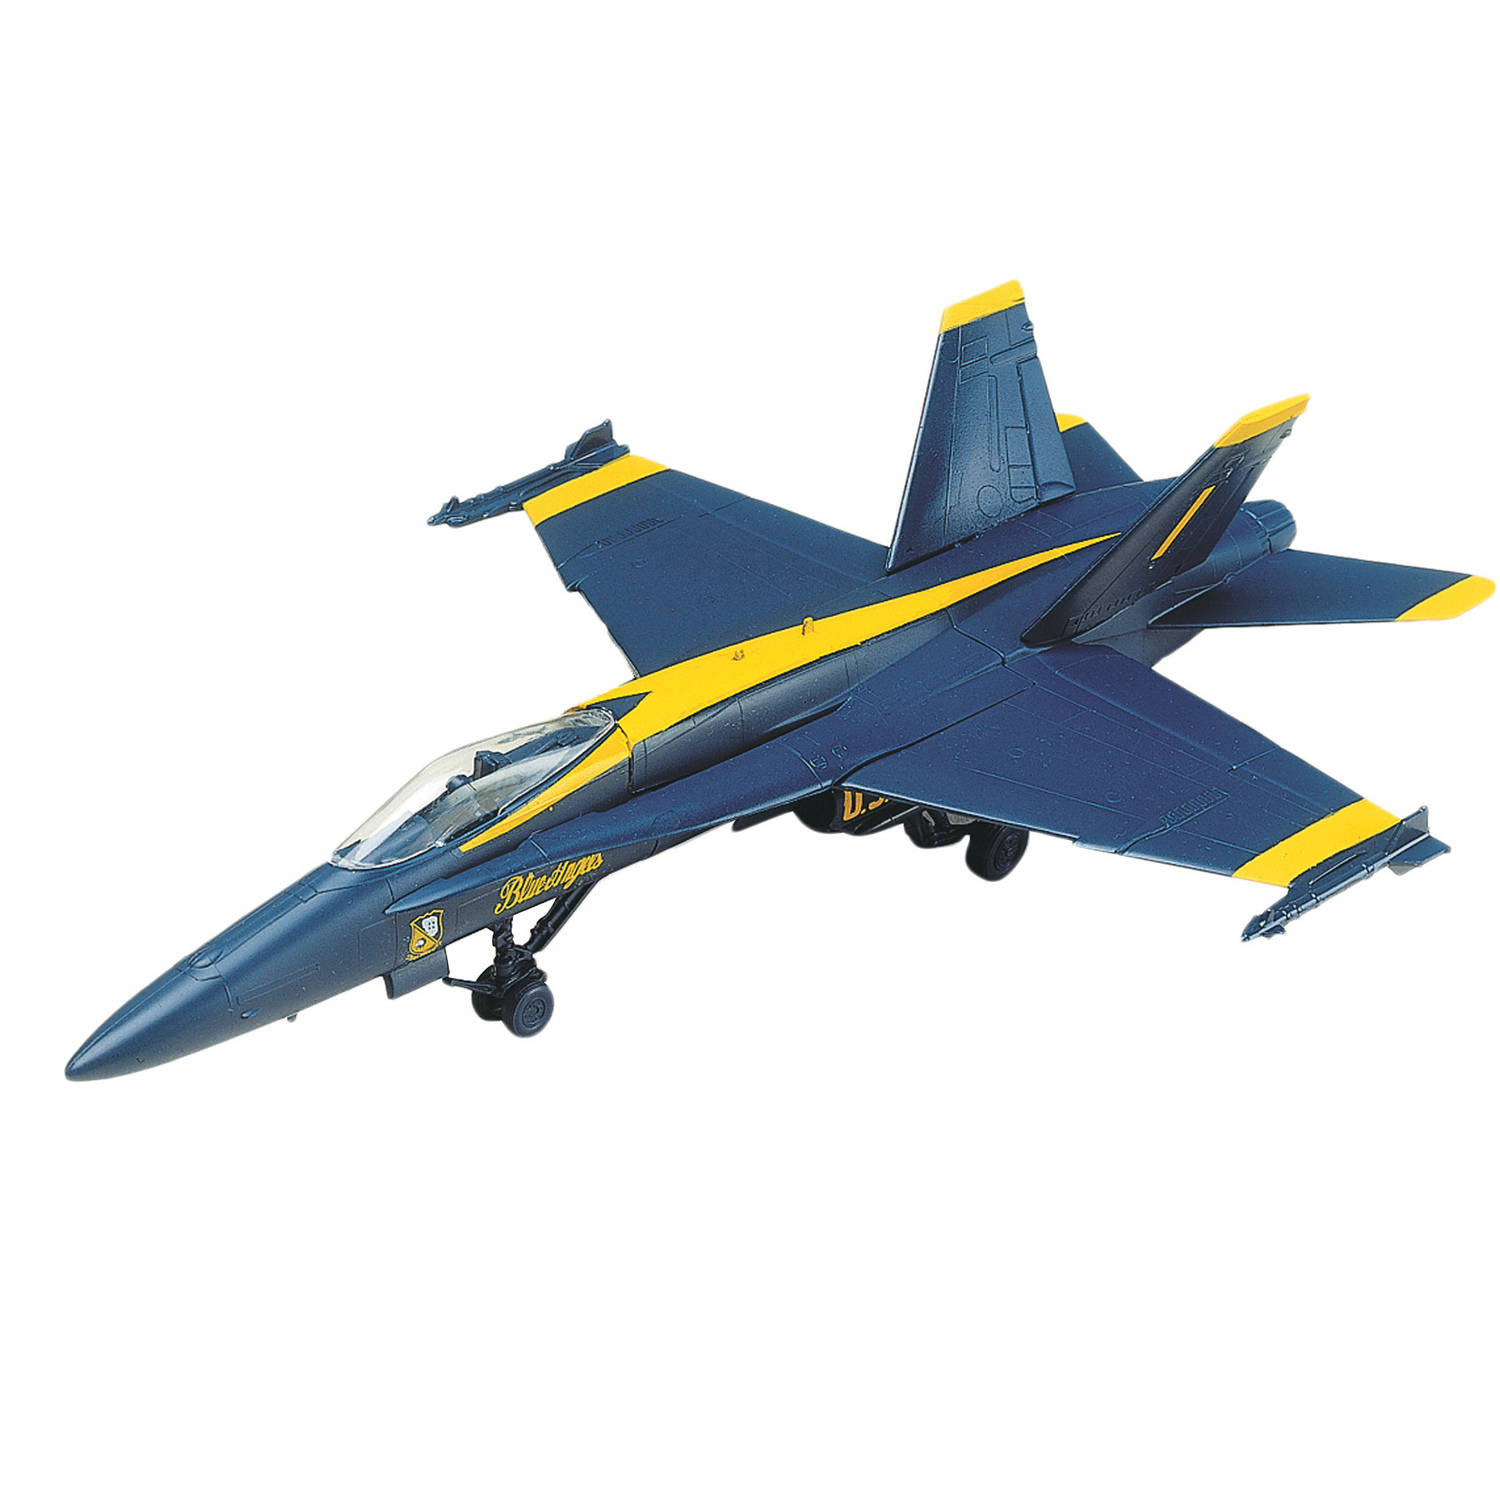 Revell 1:72 F-18 Blue Angels Model Kit by Revell